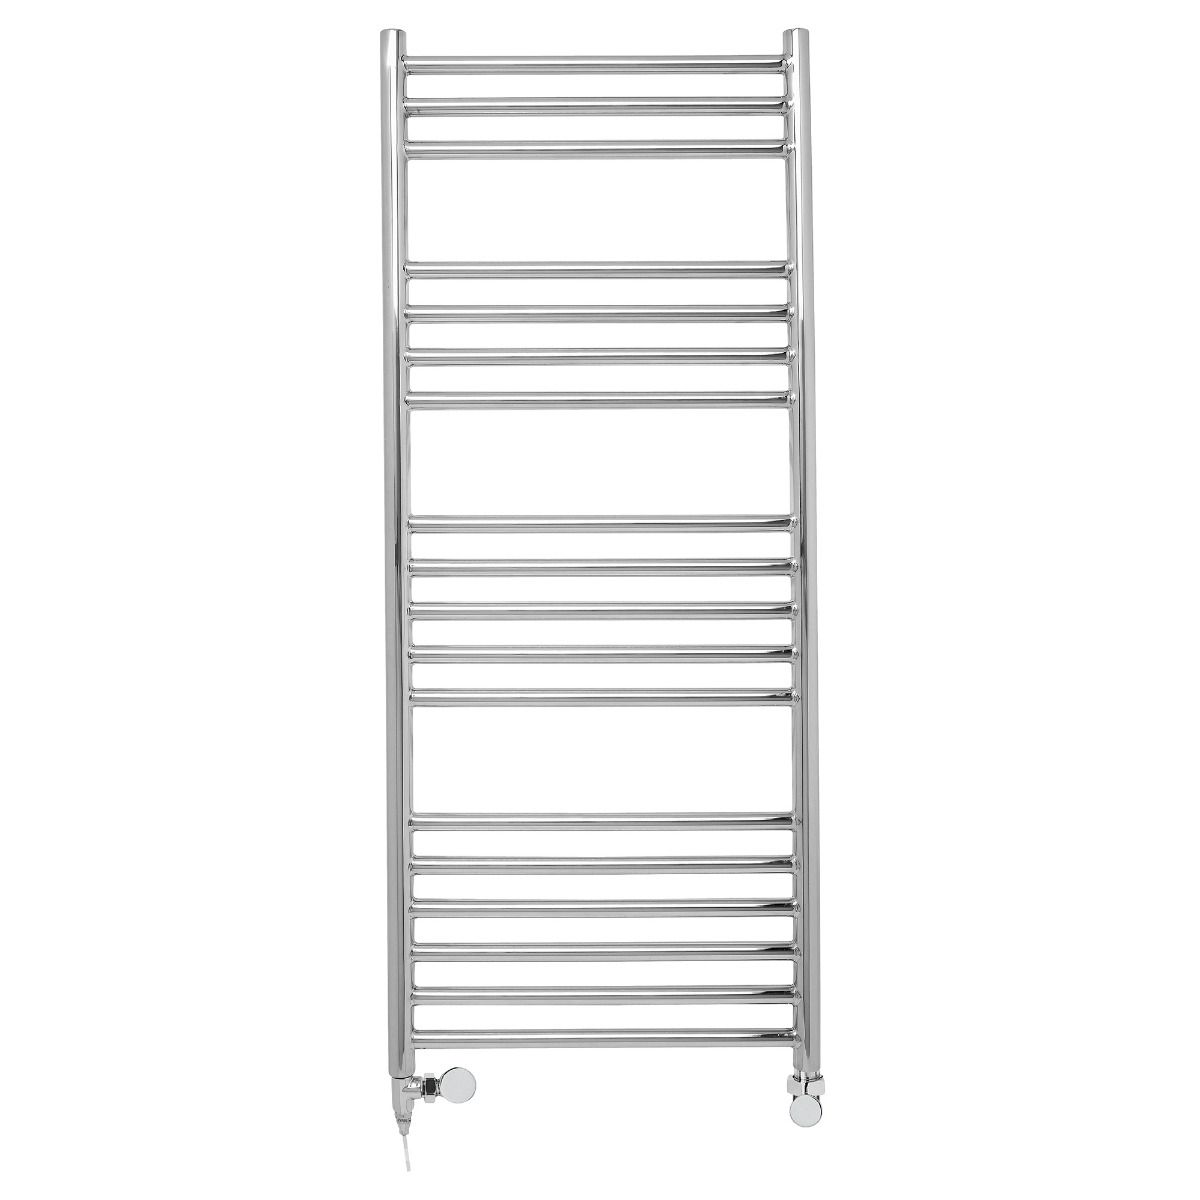 Stainless Steel Heated Towel Rail 120x60